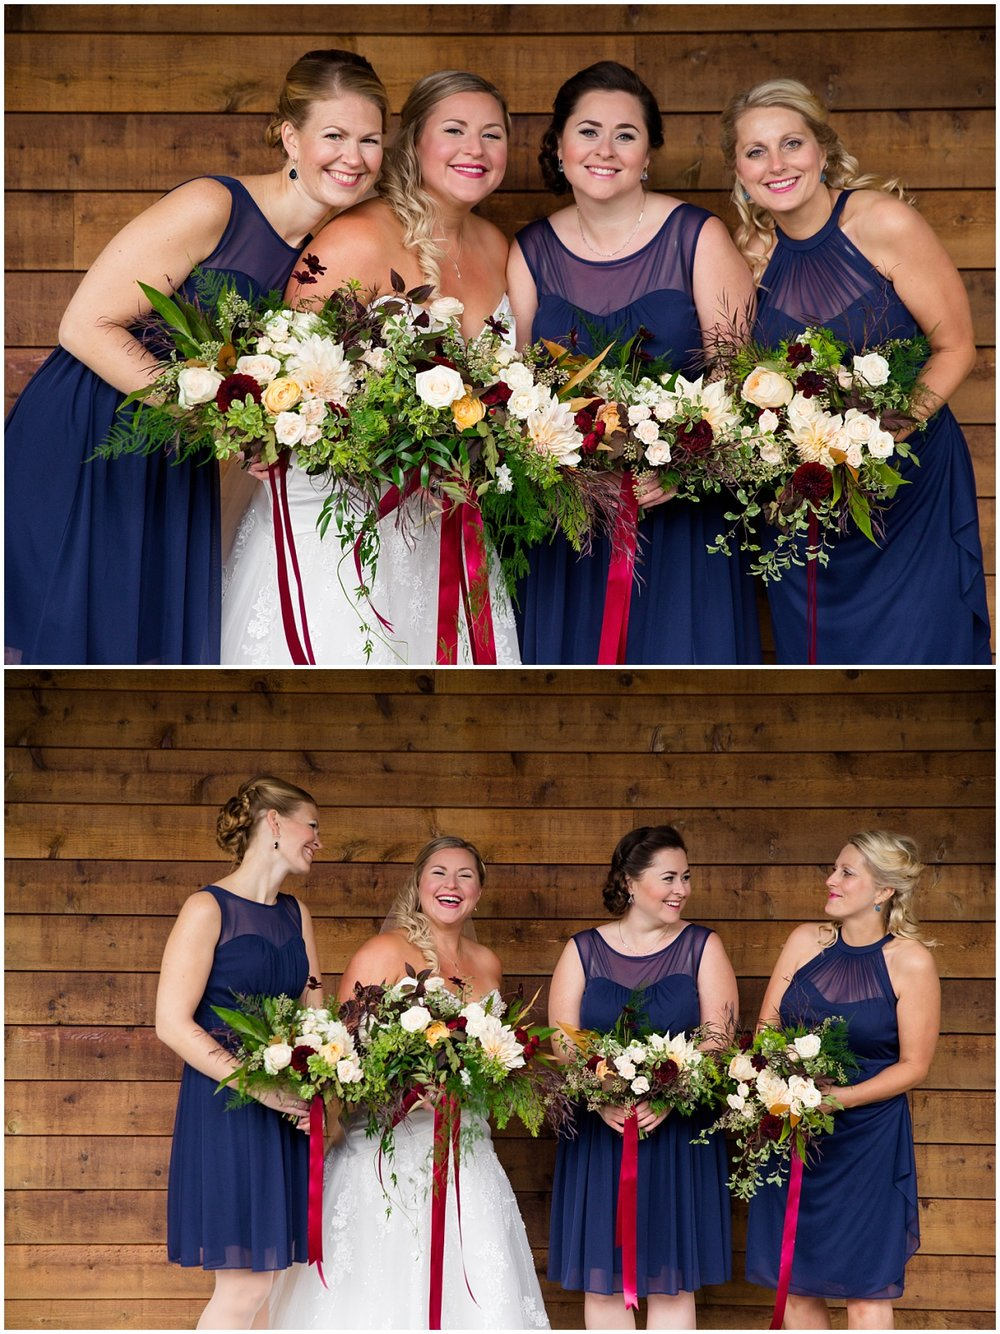 Amazing Day Photography - Fraser River Lodge Wedding - Fall Wedding - Fraser Valley Wedding Photographer - Langley Wedding Photographer (24).jpg